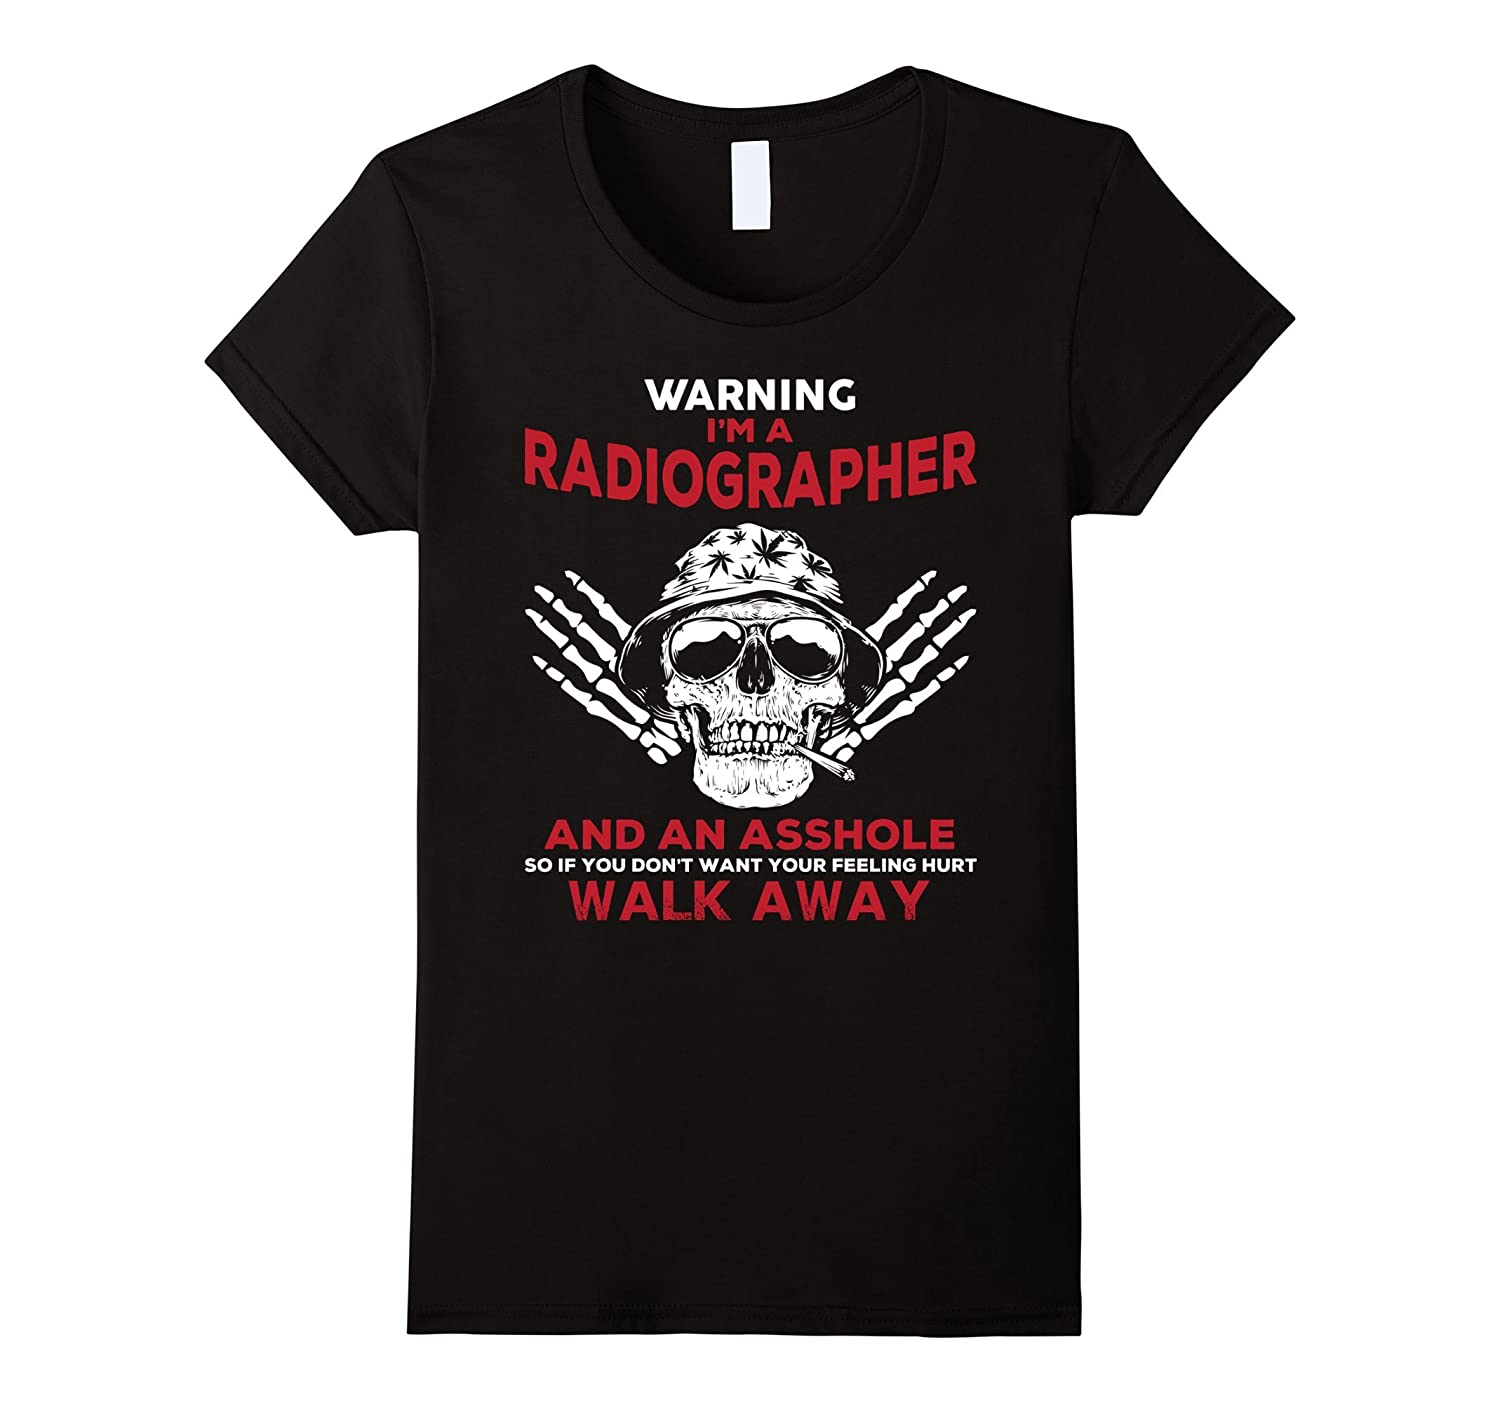 Radiographer T Shirt Don't Want Feeling Hurt Walk Away